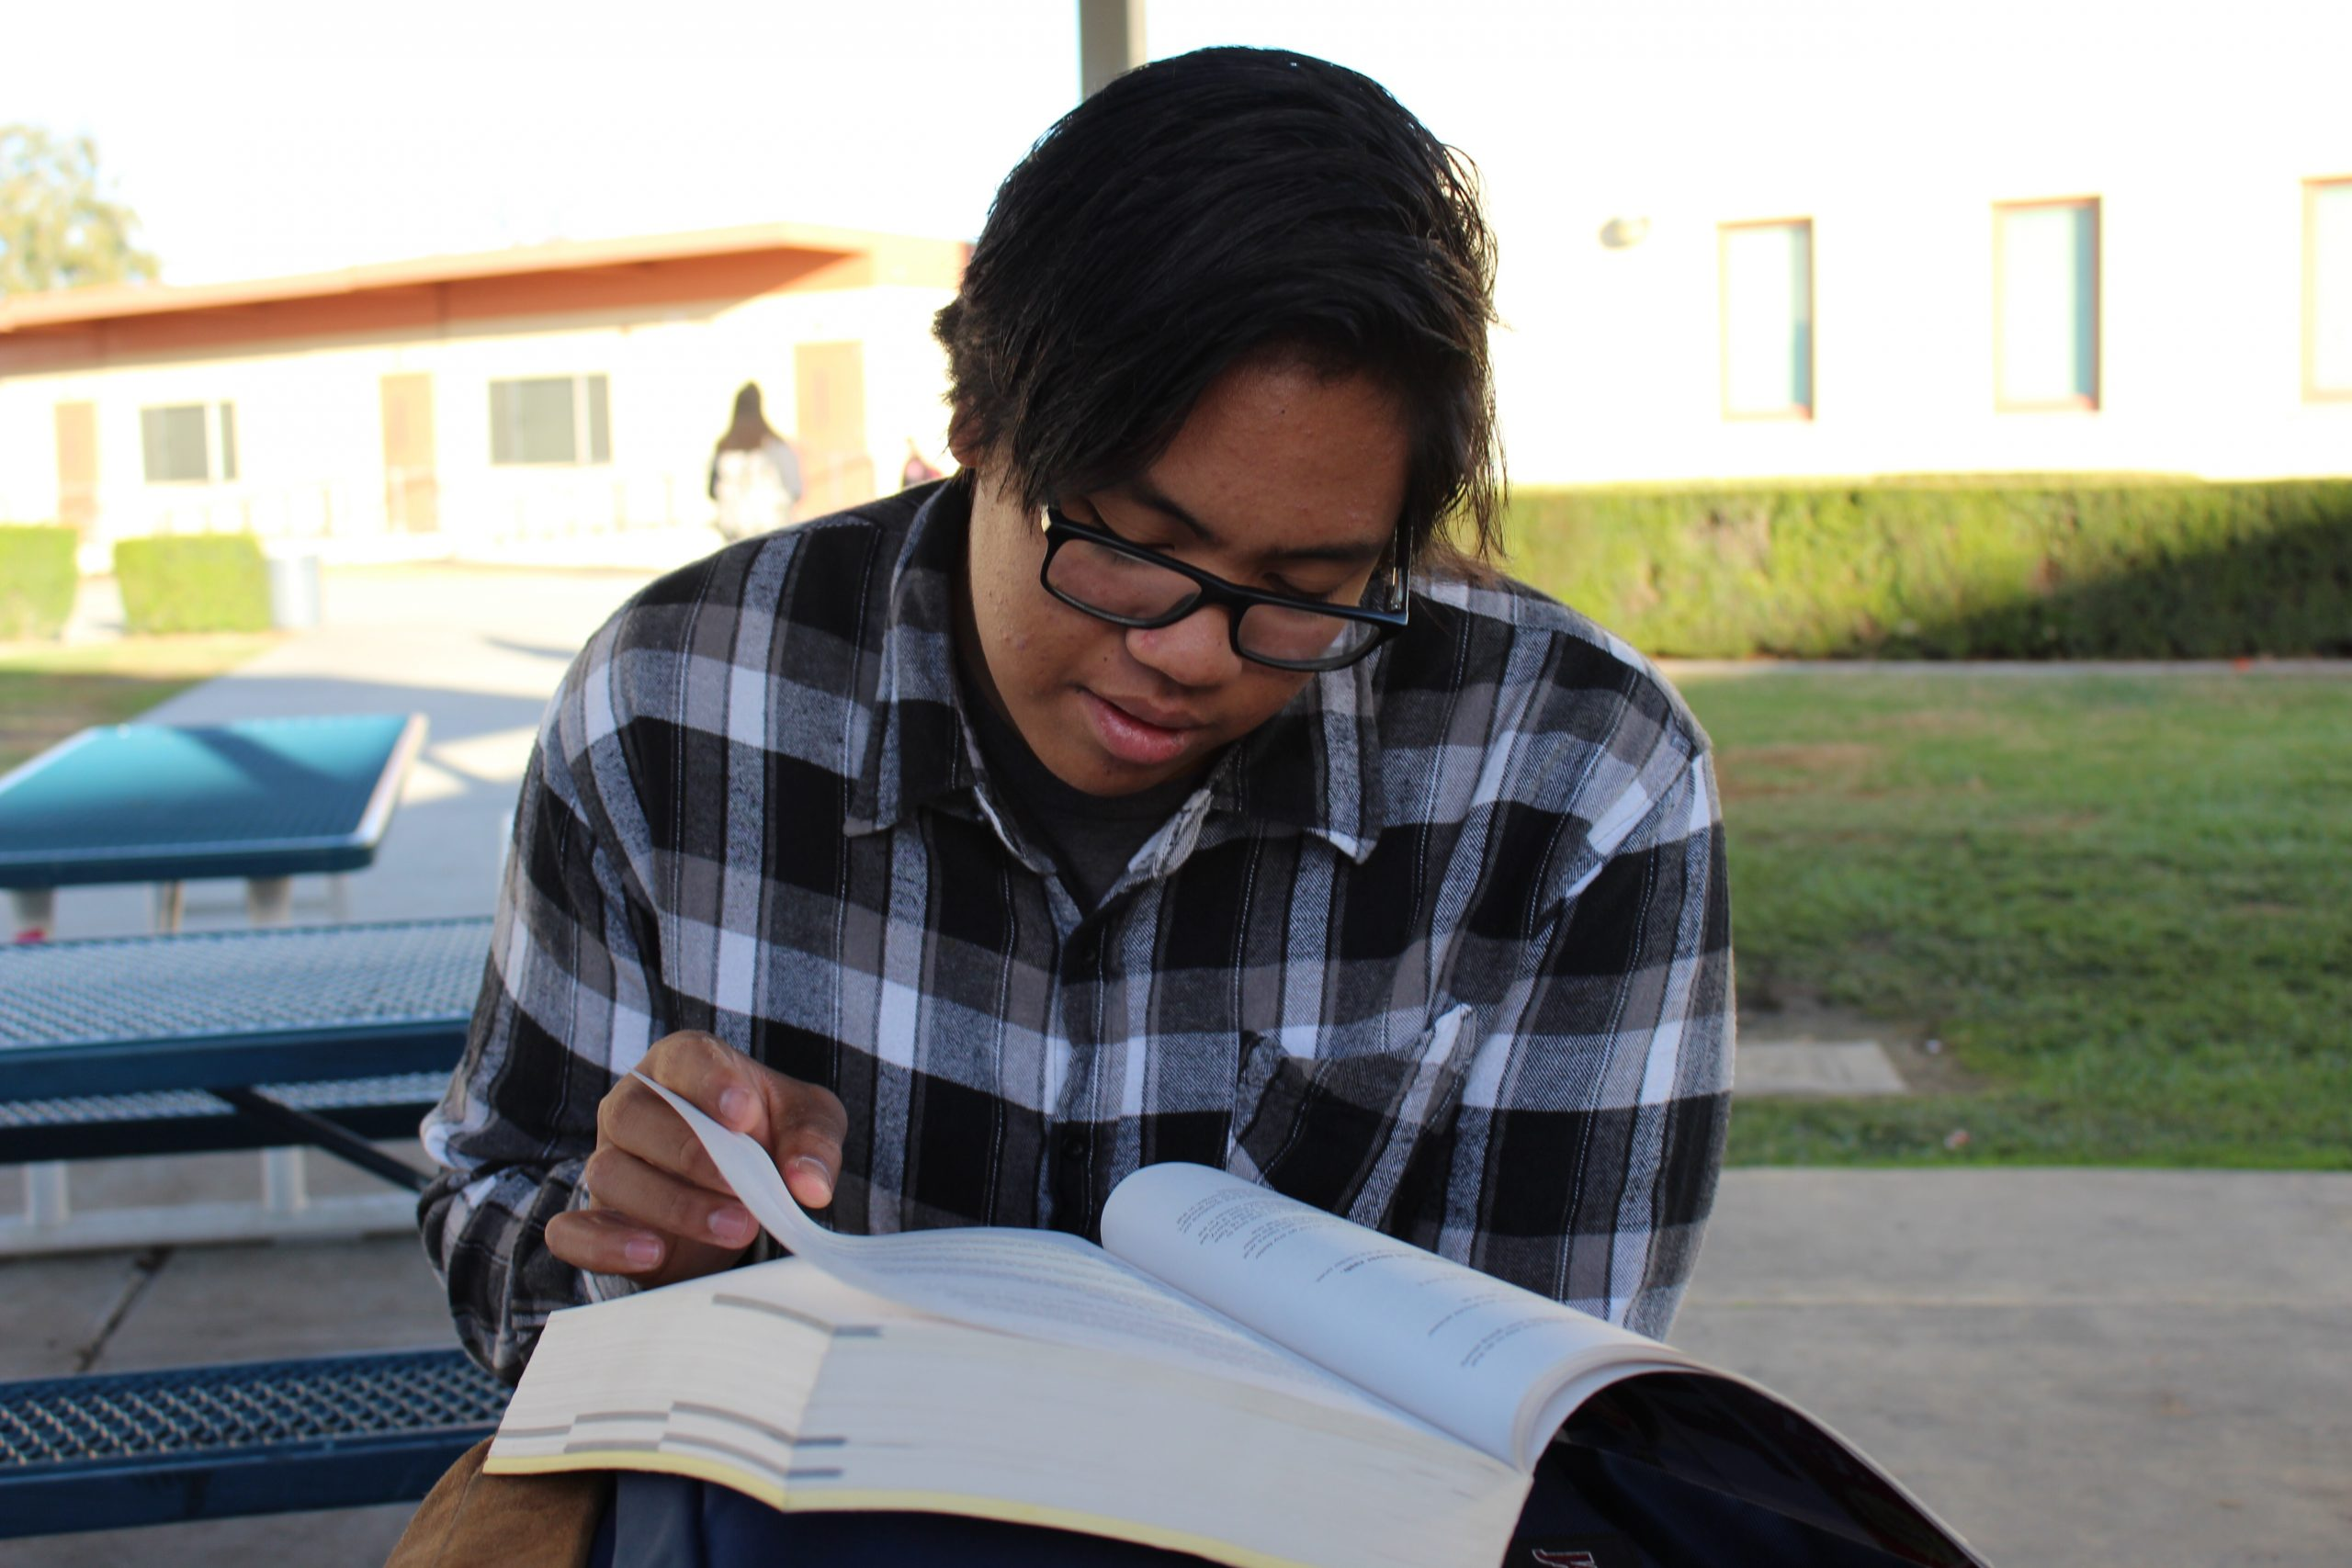 Male Filipino student reading a textbook outside